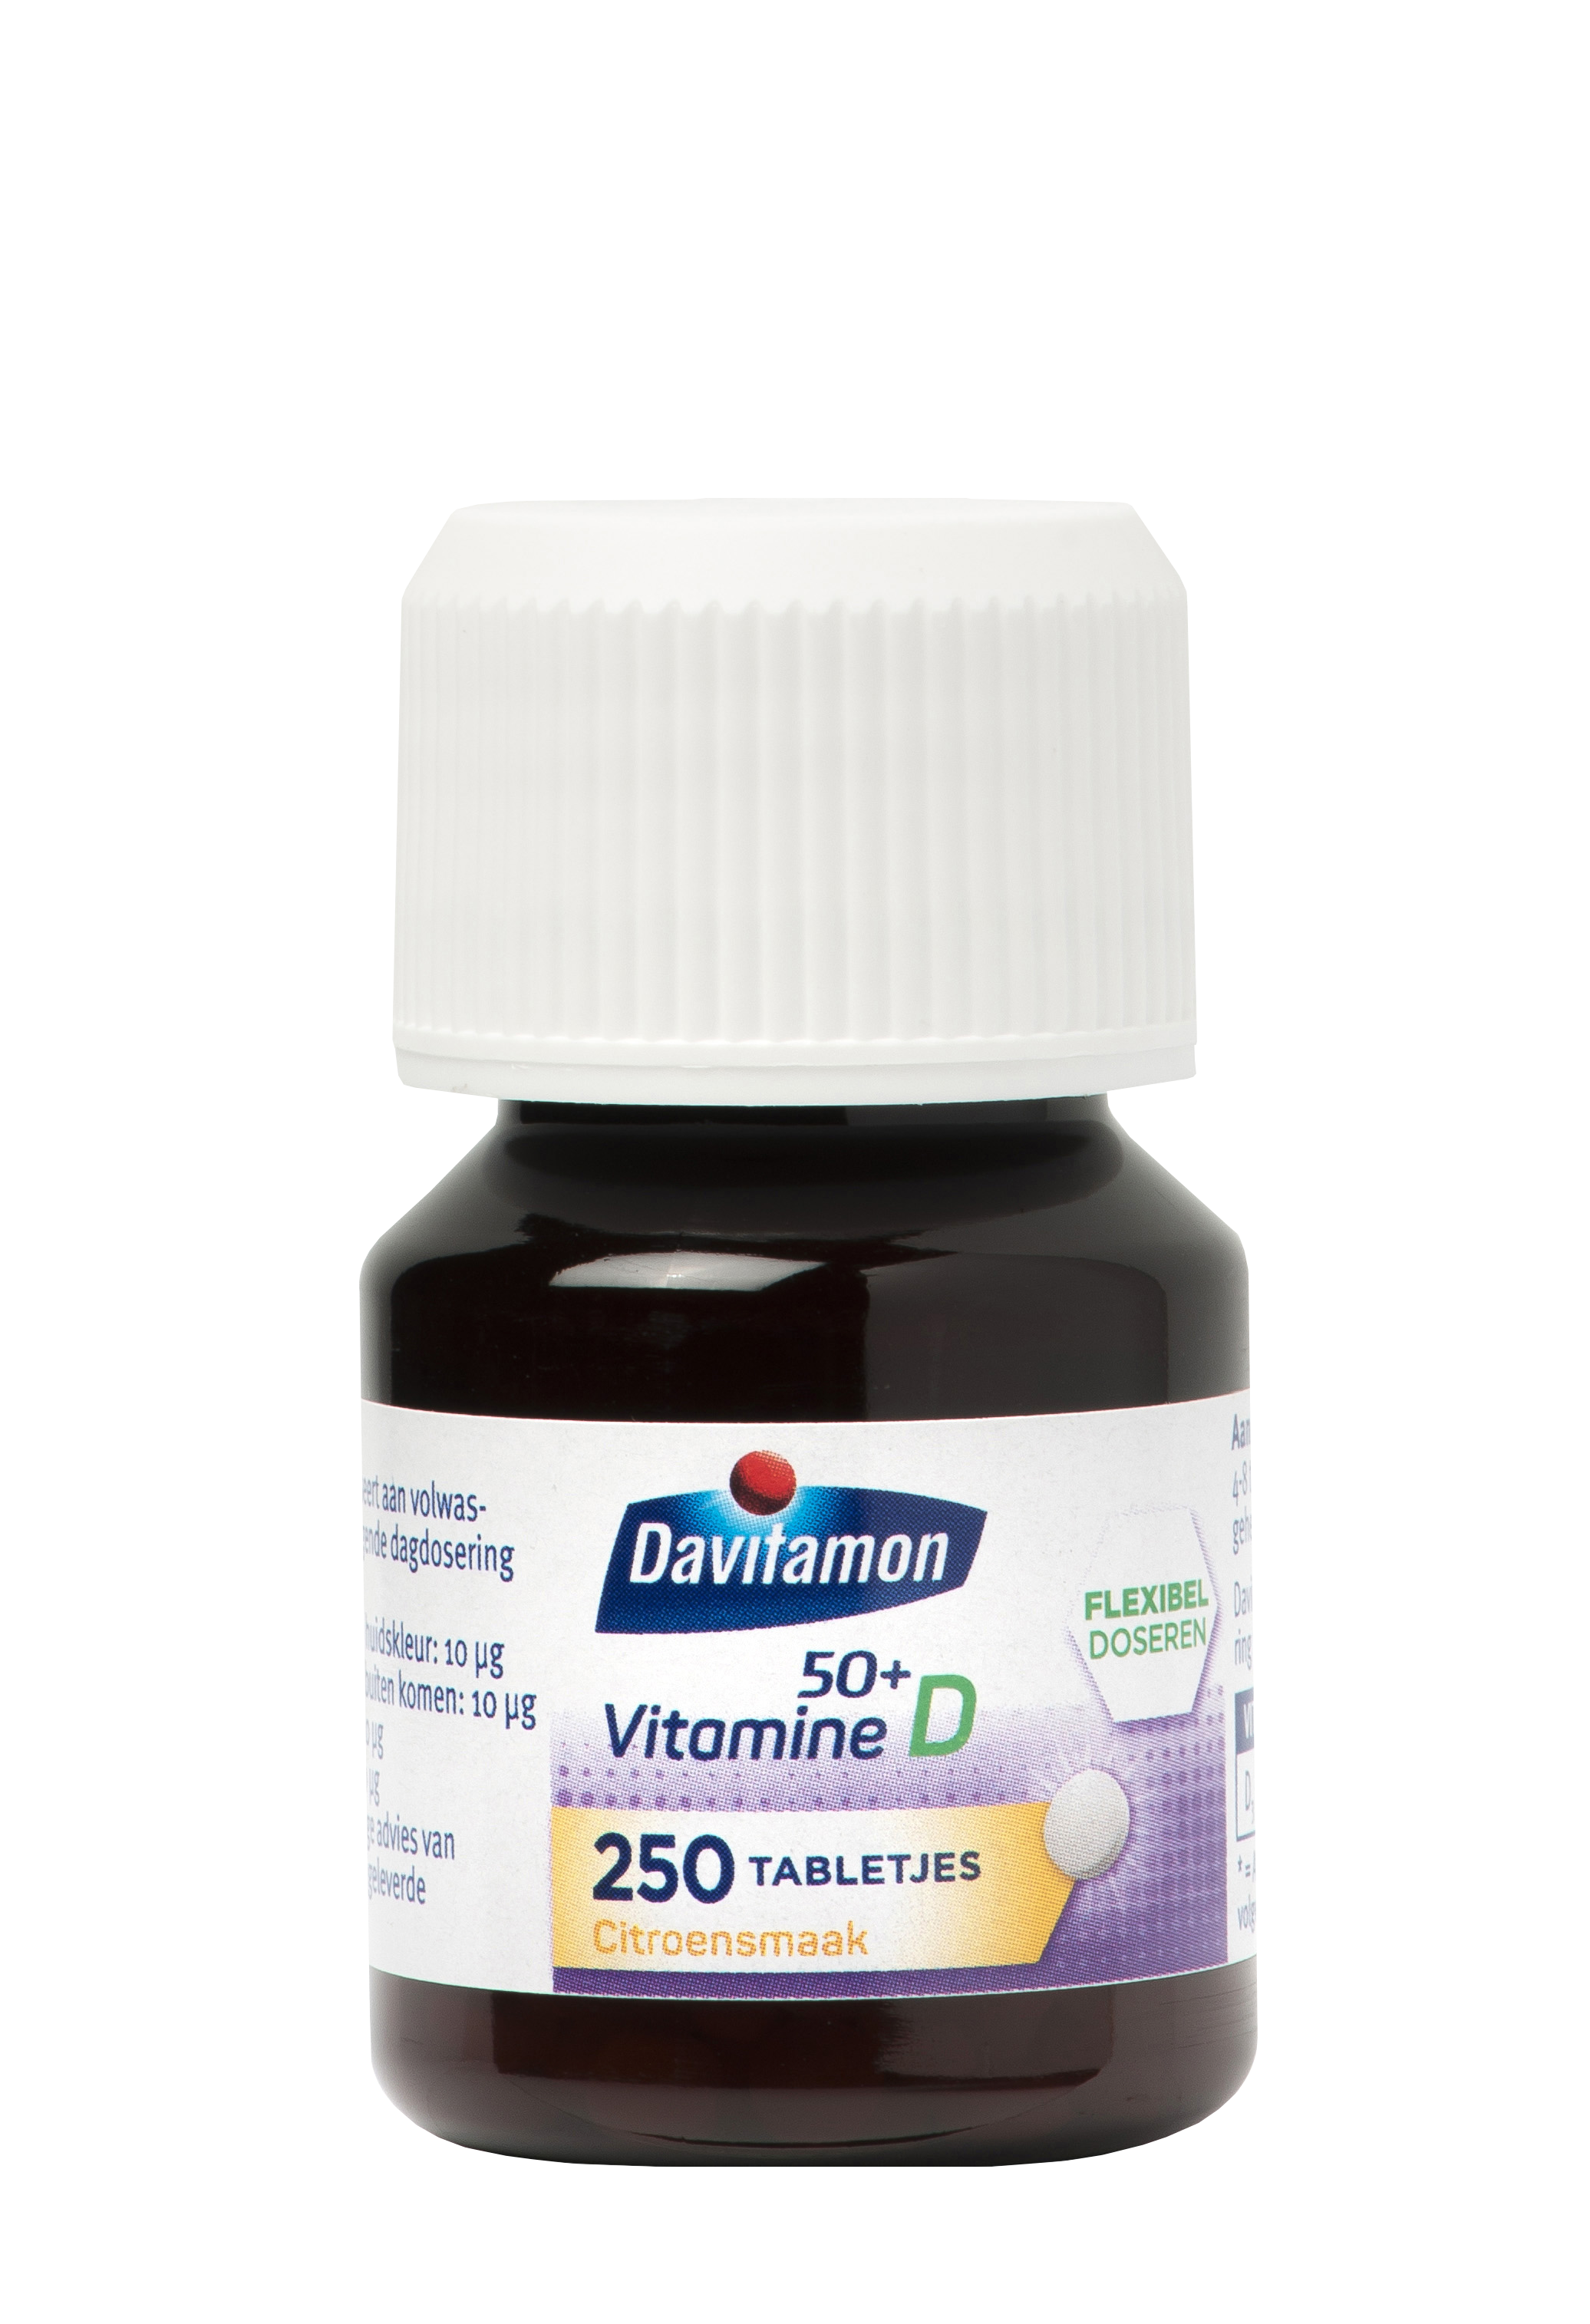 Davitamon Vitamine D 50+ 250 Smelttabletten Product